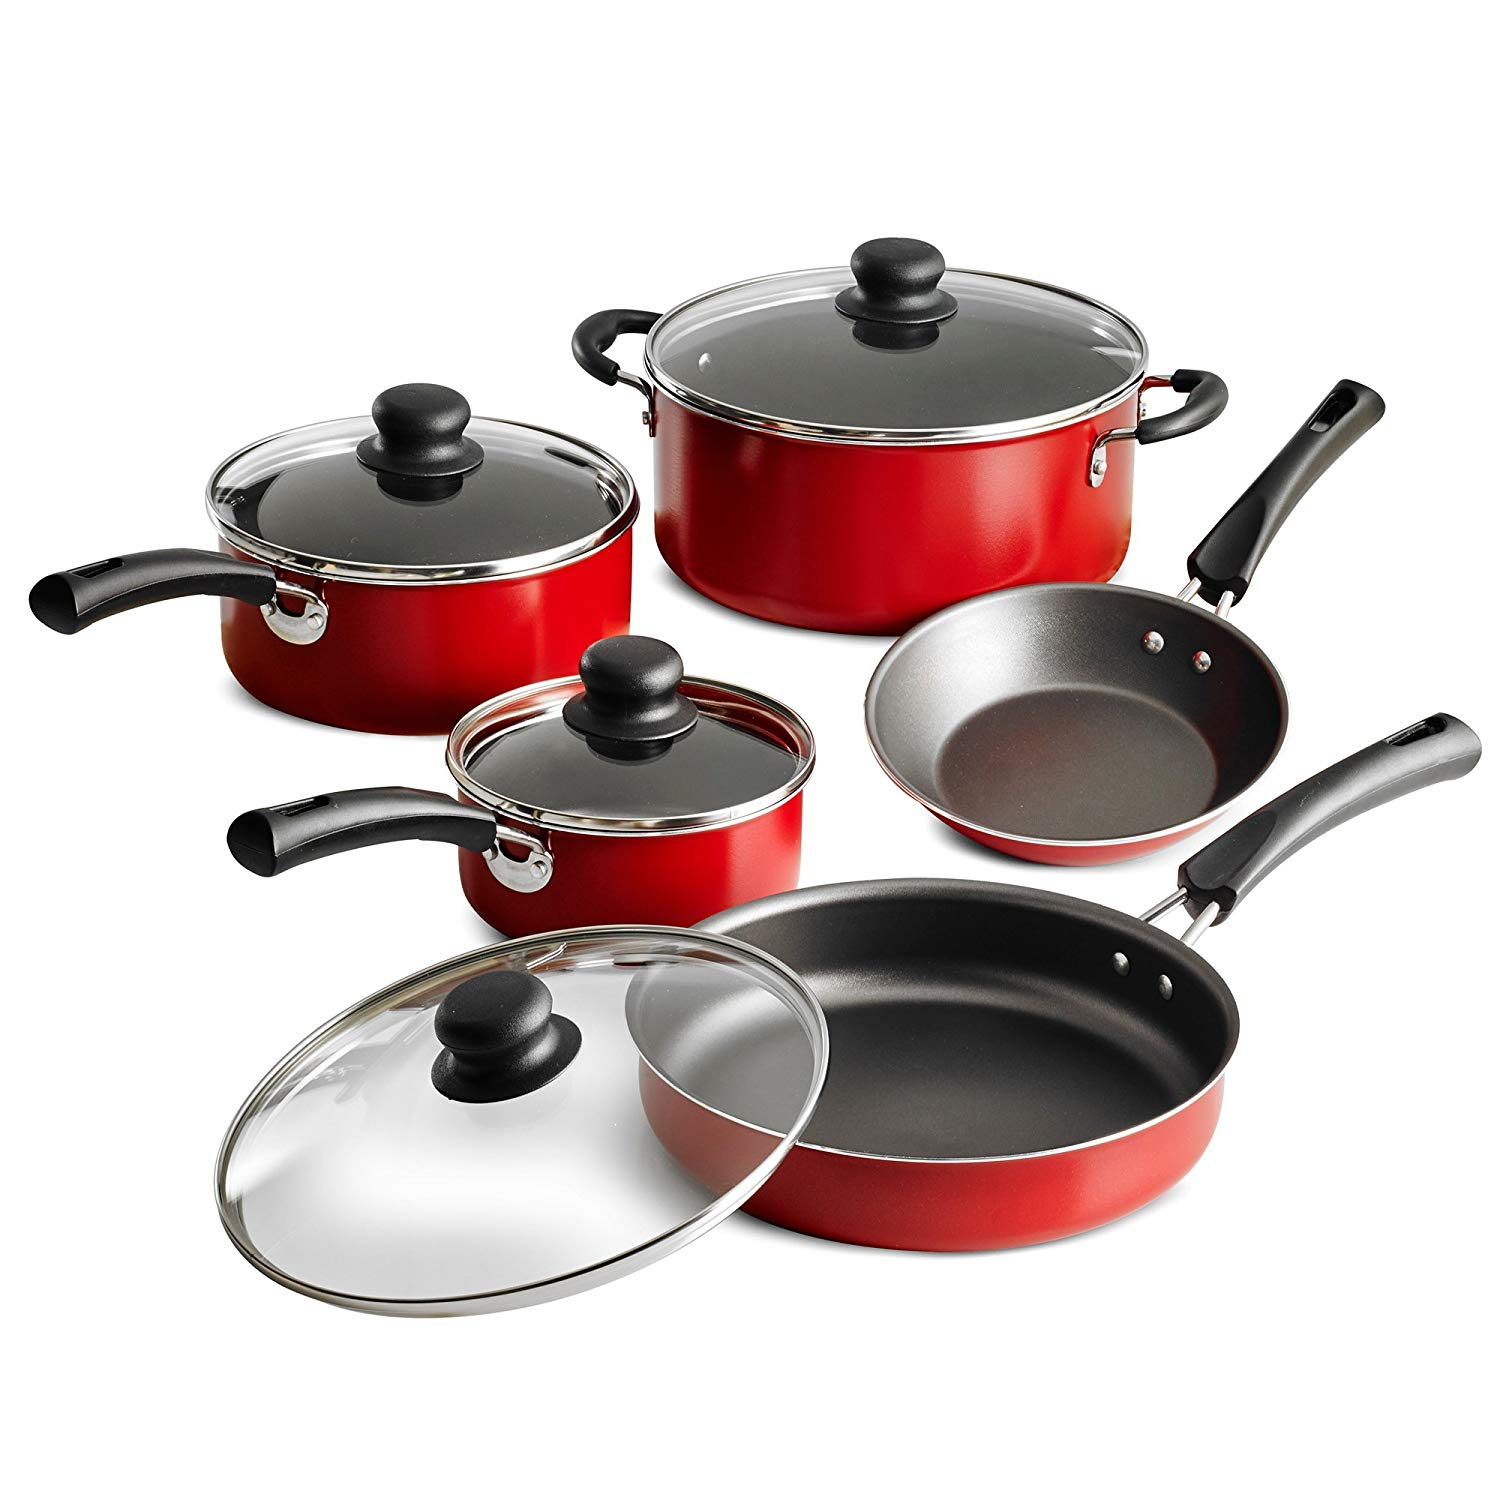 Tramontina 9-Piece Simple Cooking Nonstick Cookware Set Red,Black